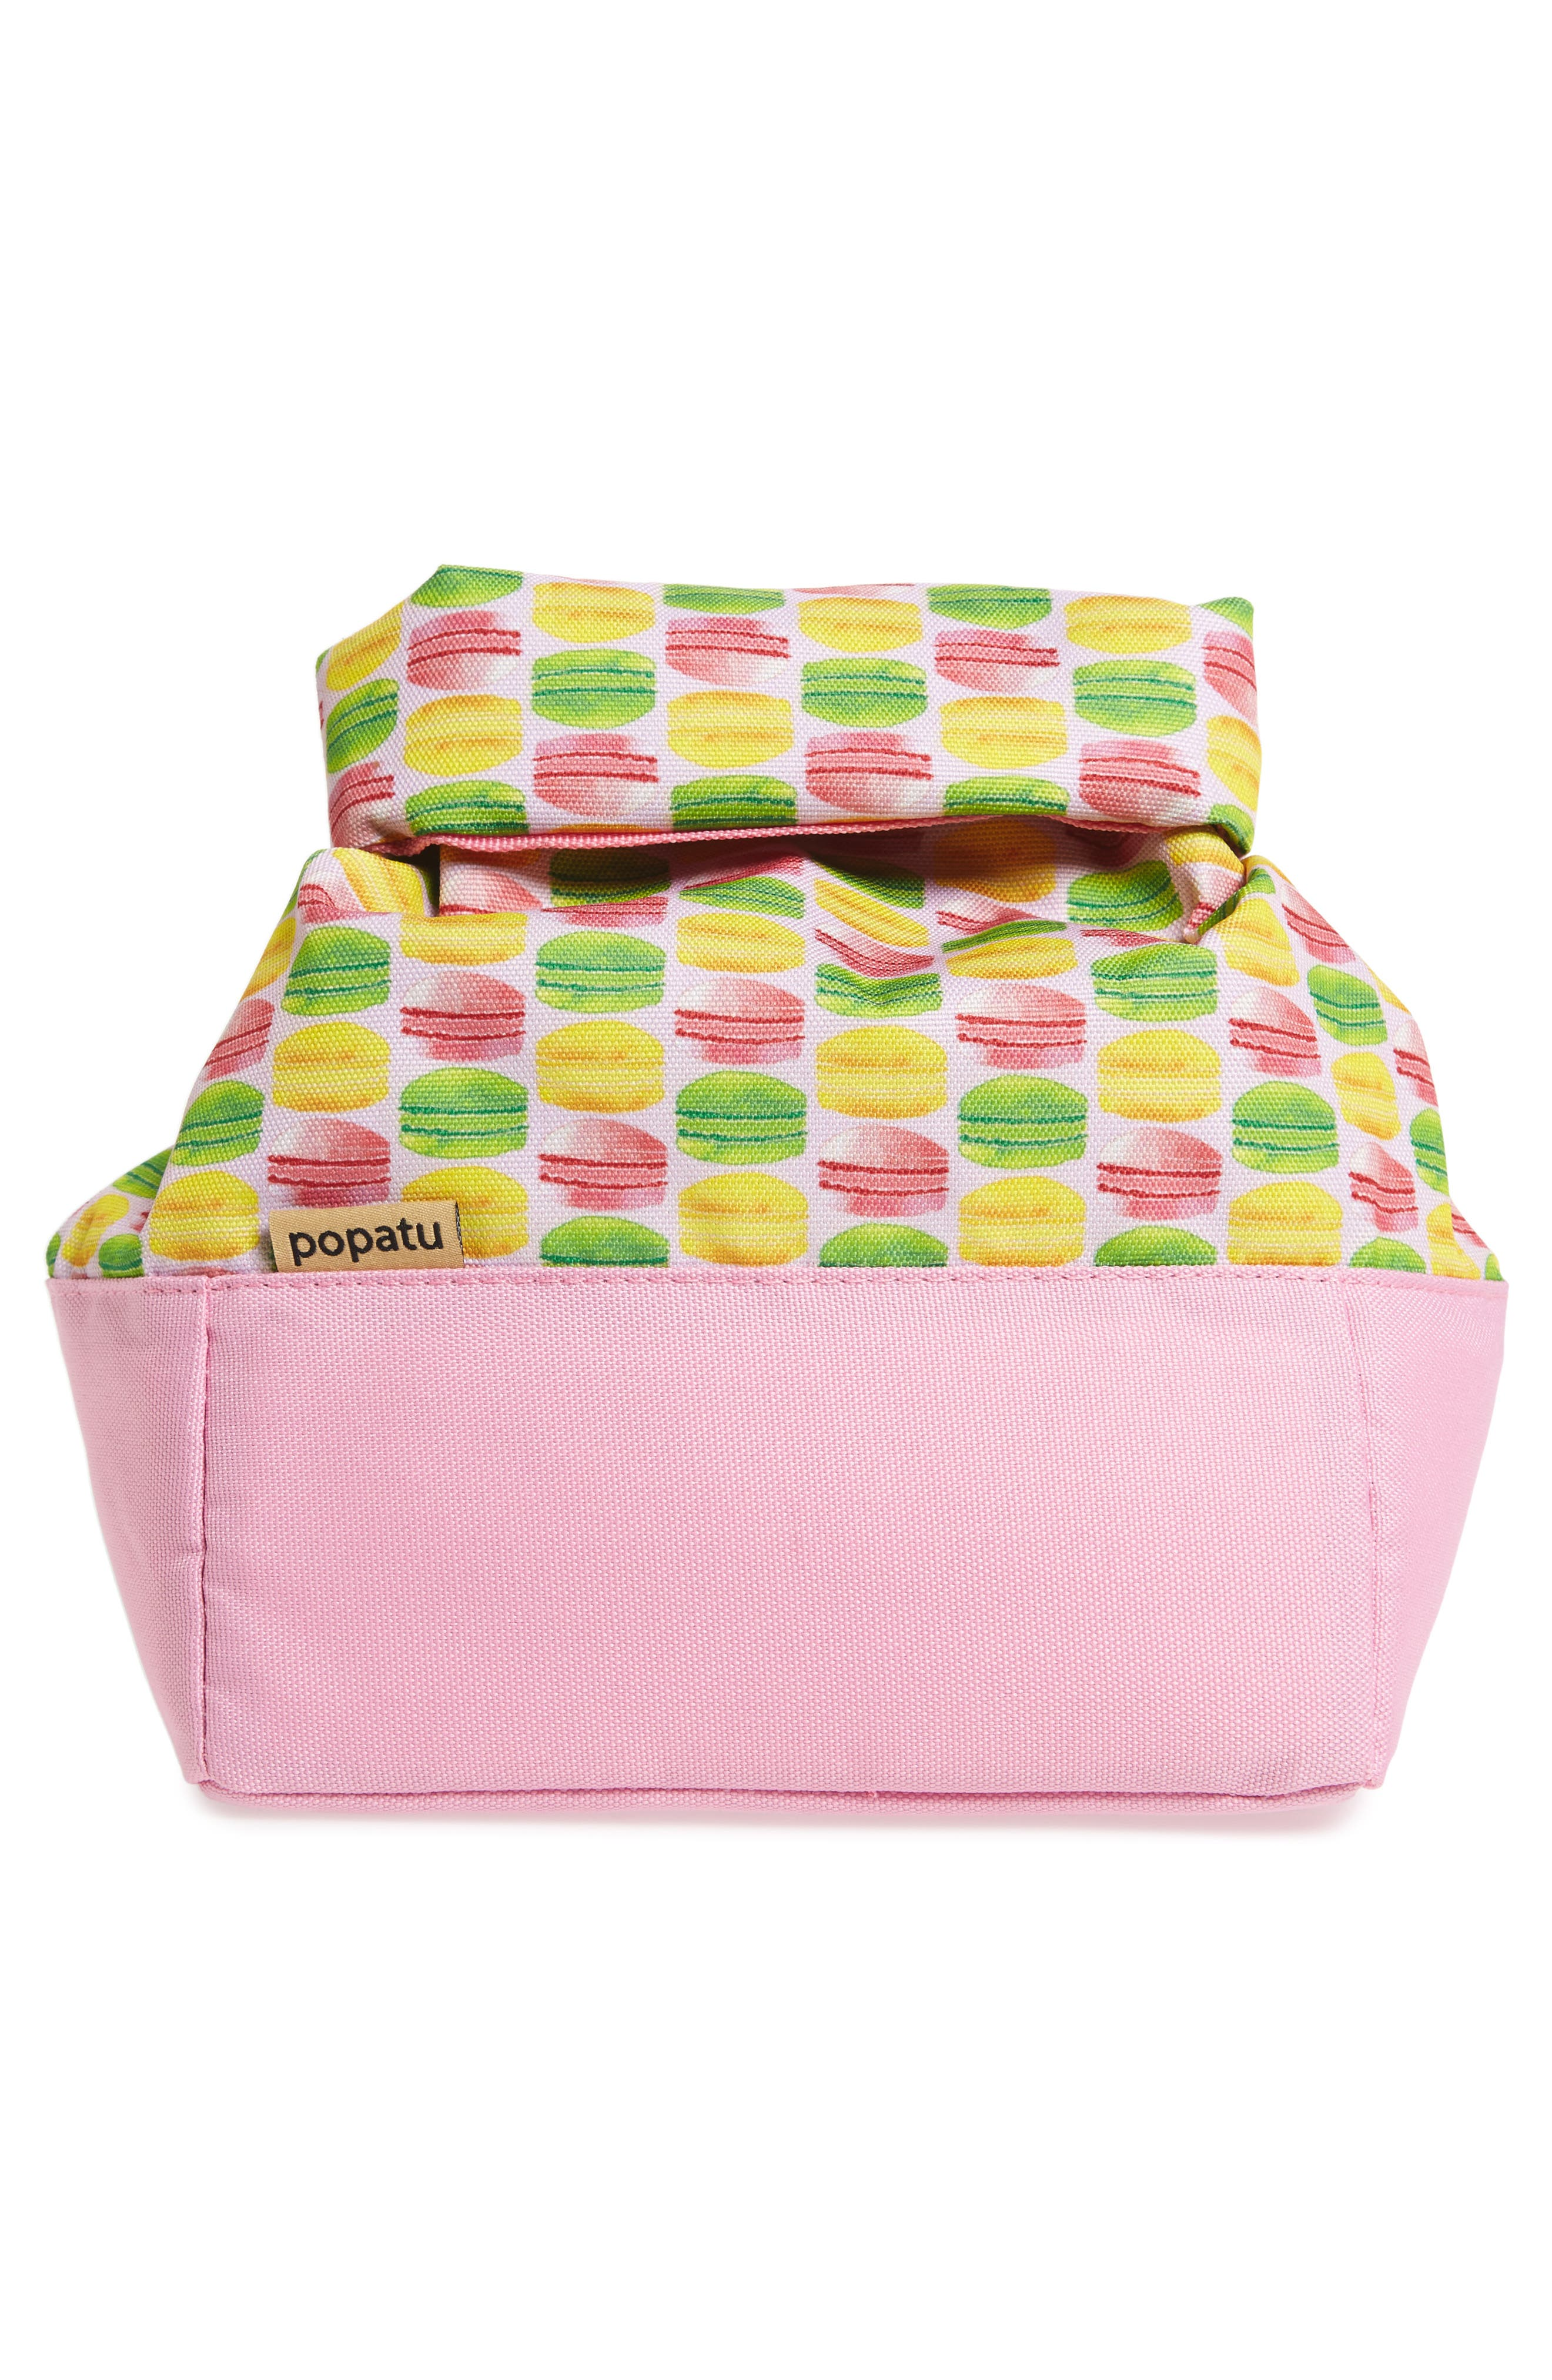 Macaron Print Roll Top Lunch Bag,                             Alternate thumbnail 2, color,                             Pink